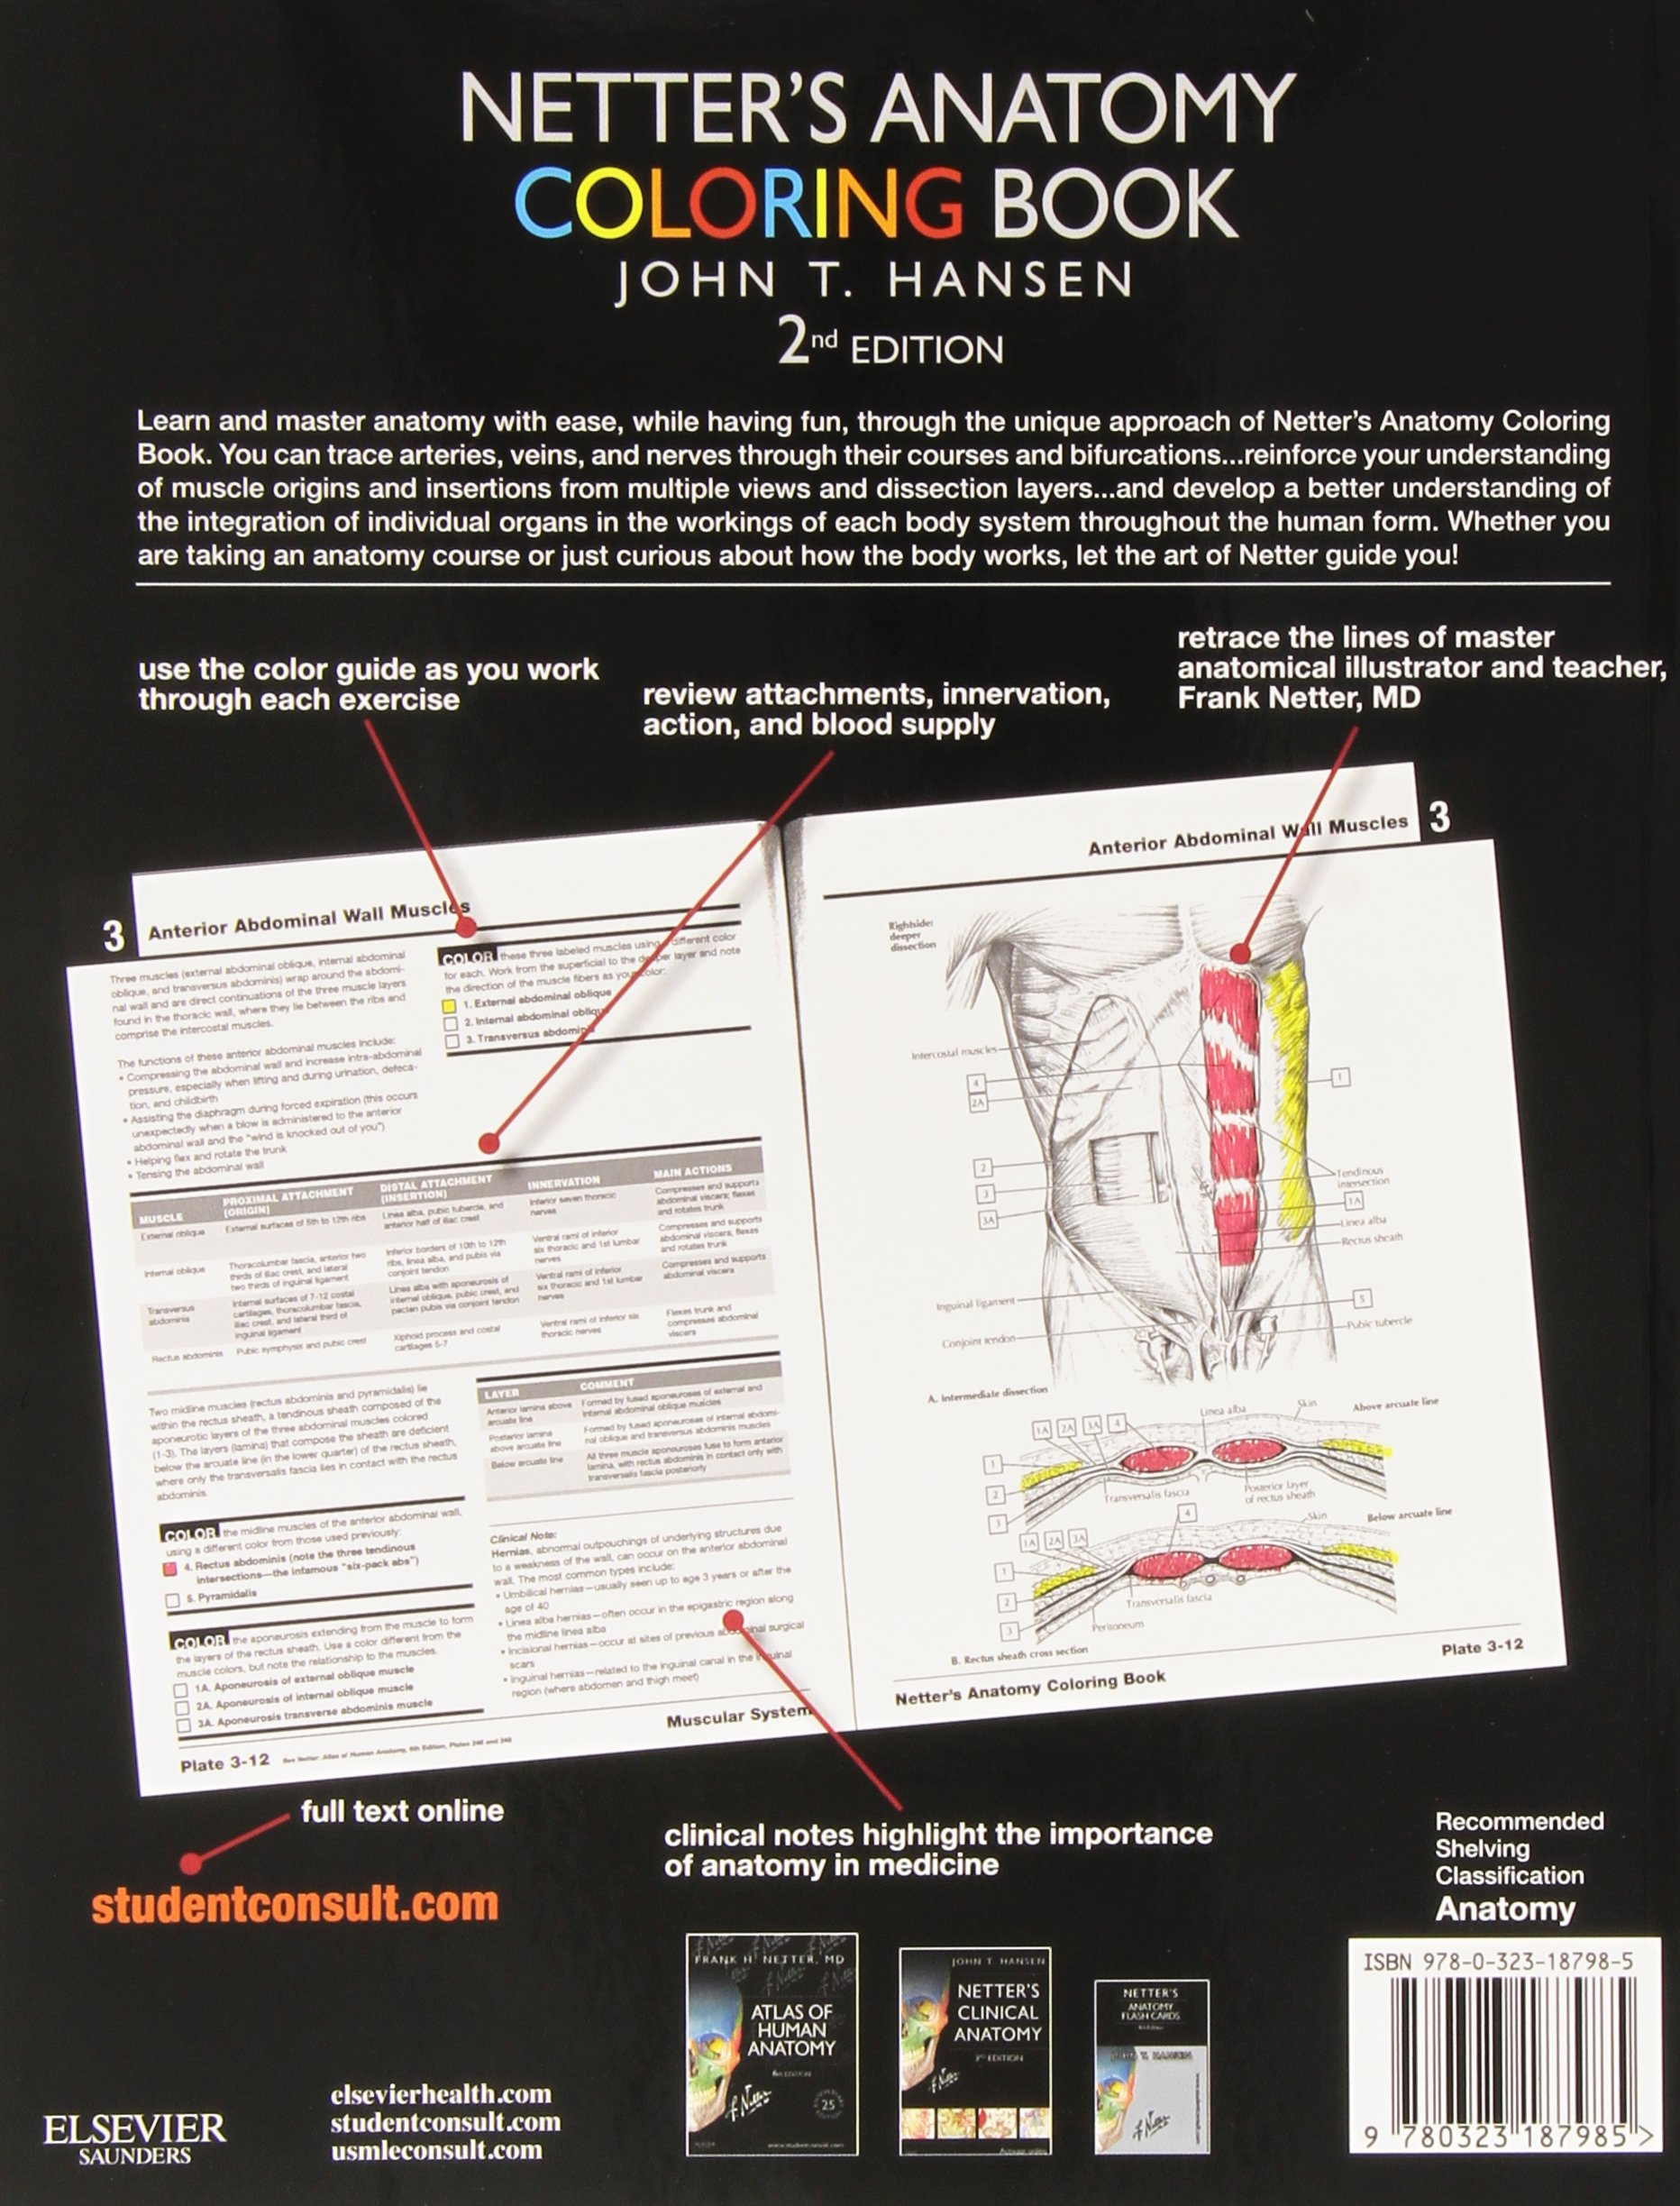 Netters Anatomy Coloring Book With Student Consult Access John T Hansen PhD 9780323187985 Amazon Canada